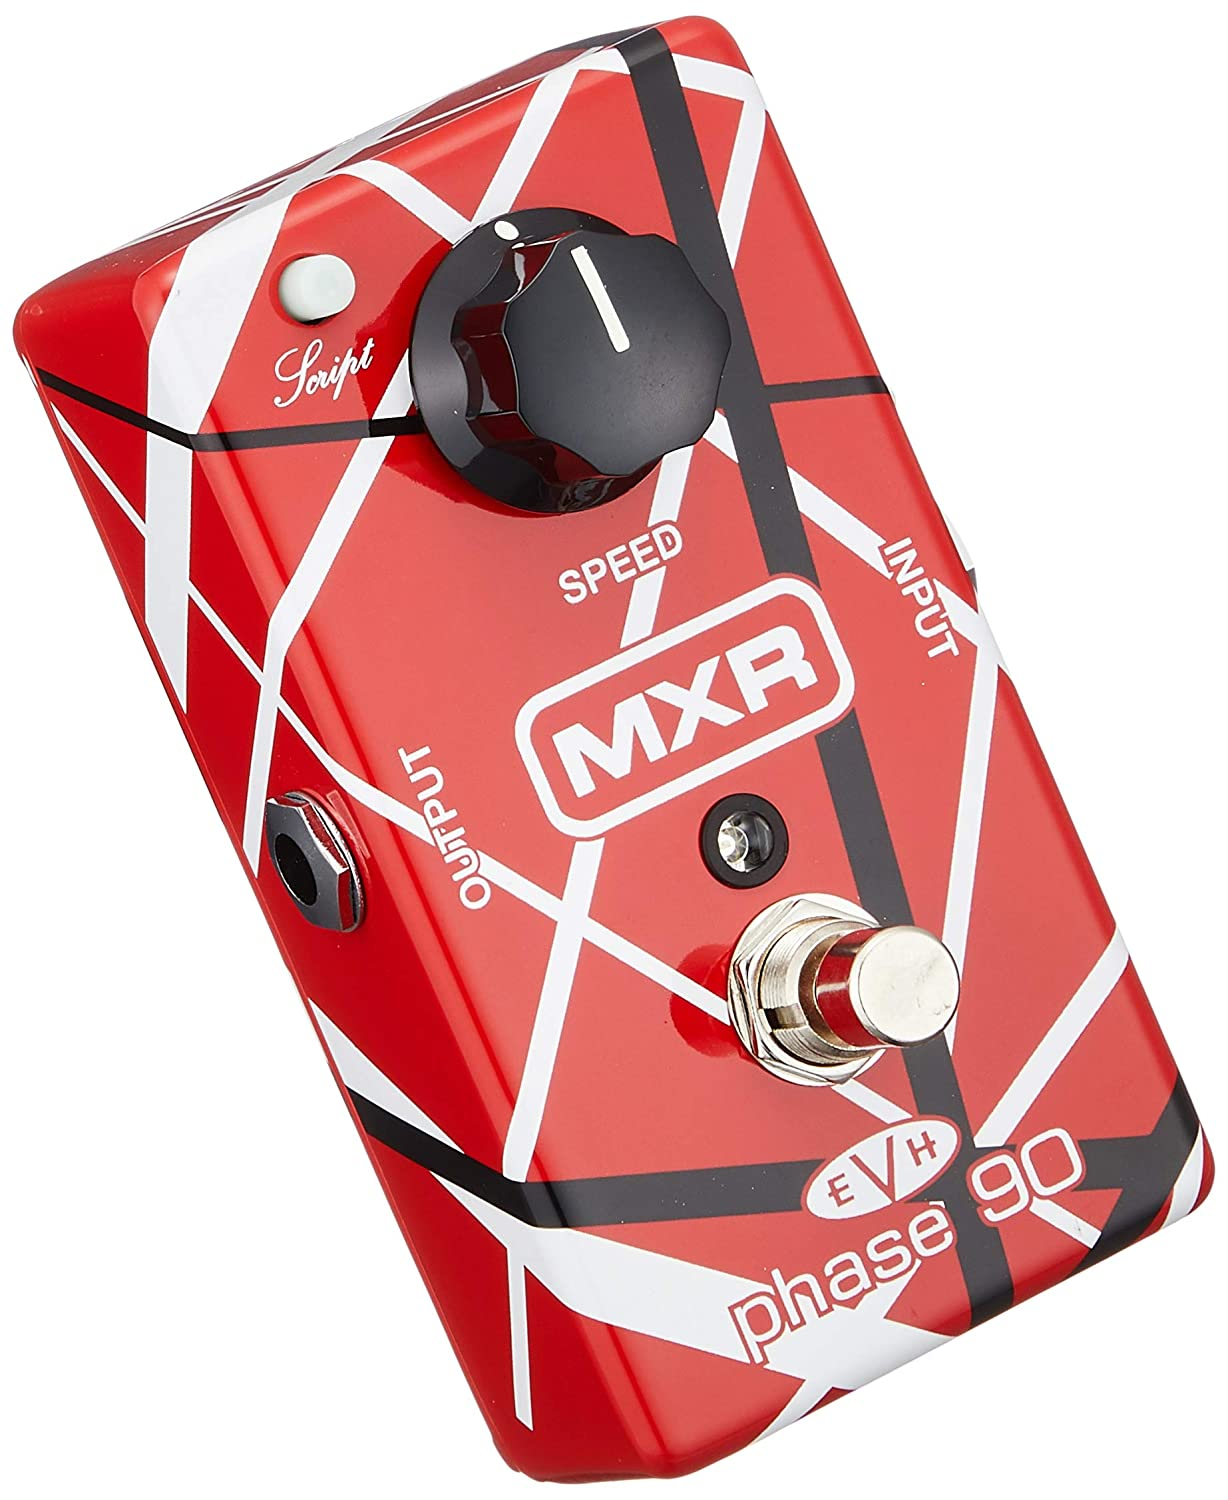 Top 13 Best Phaser Pedal for Guitar Reviews in 2020 13